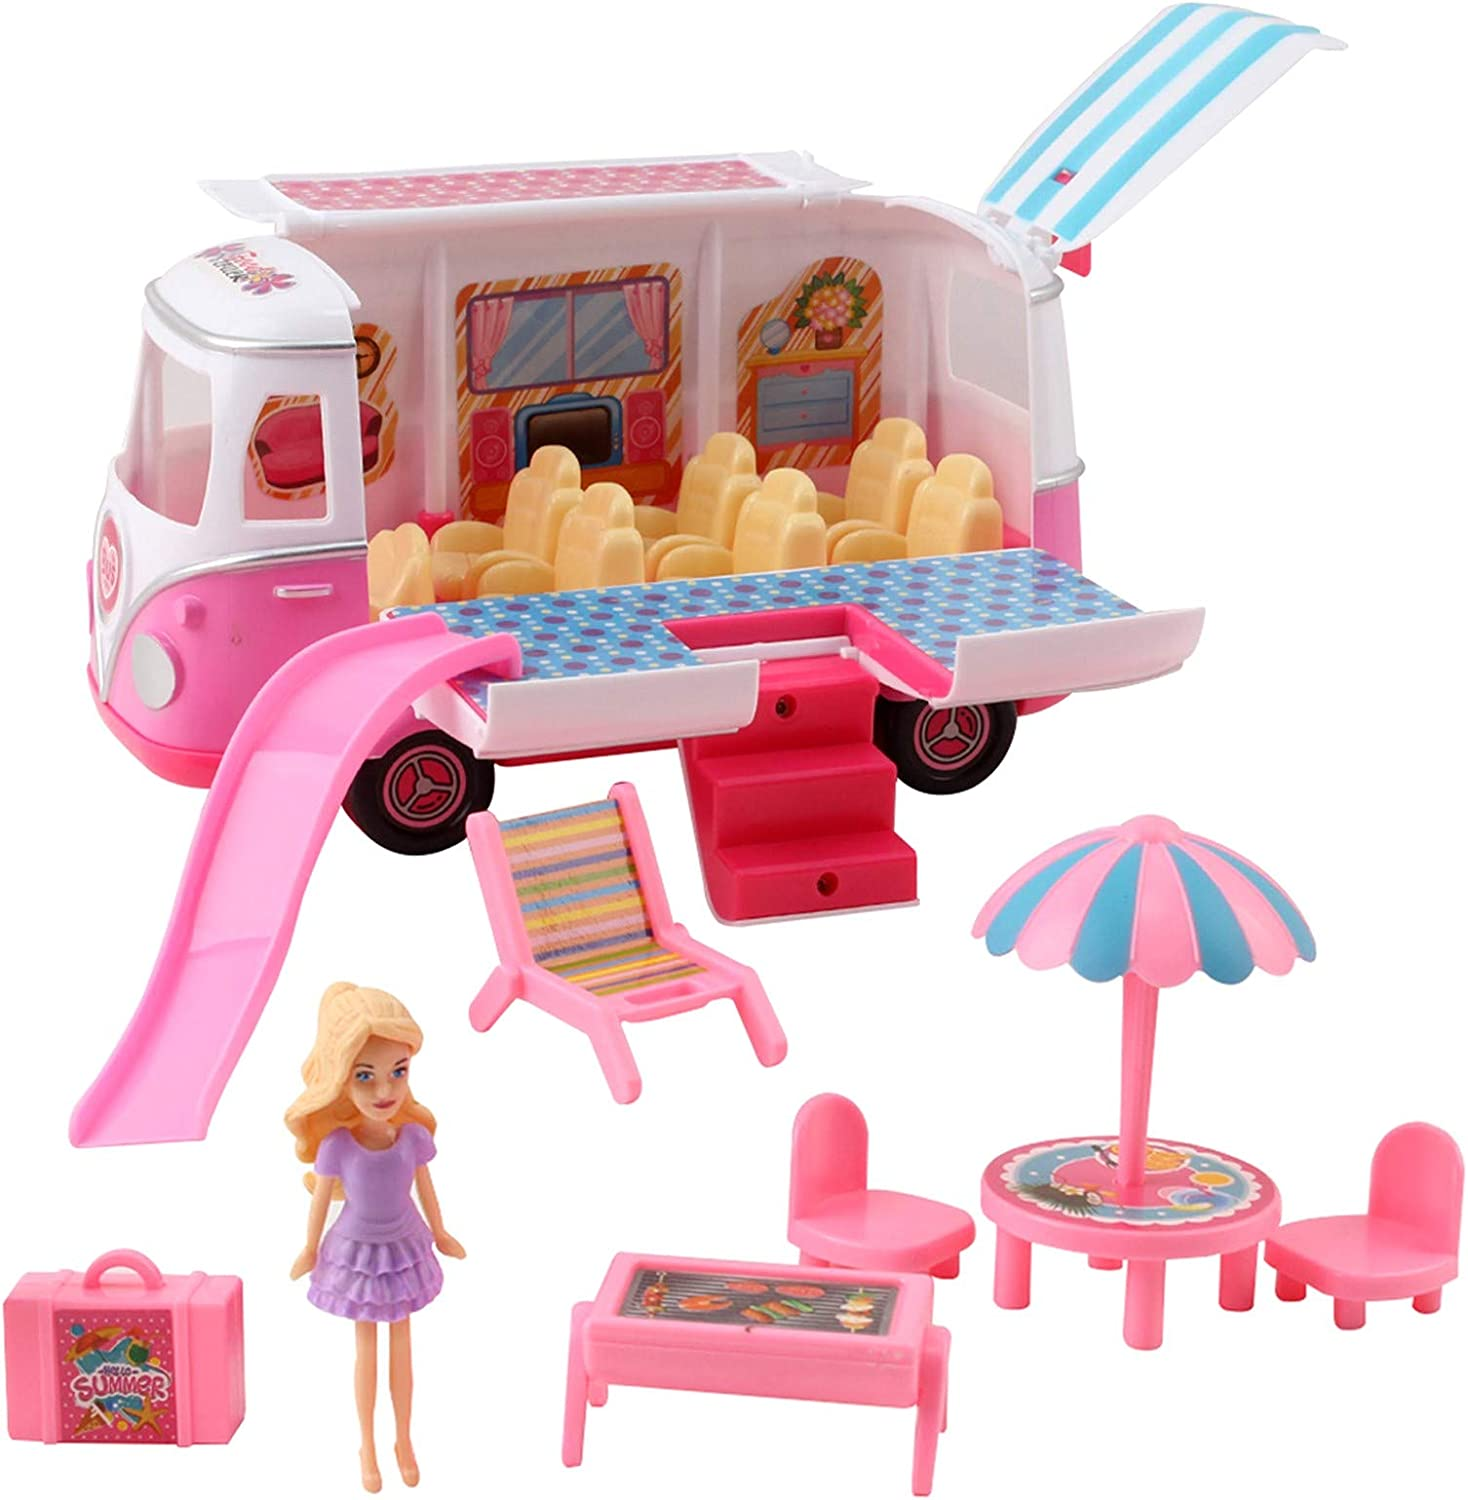 Vokodo Picnic Adventure Van With Doll Figurine Includes Slide Patio Furniture And Wardrobe Kids Pretend Play Party Bus Cooking Truck Kitchen Vogue Toy Fashion Car Vehicle Great Gift For Girls Children